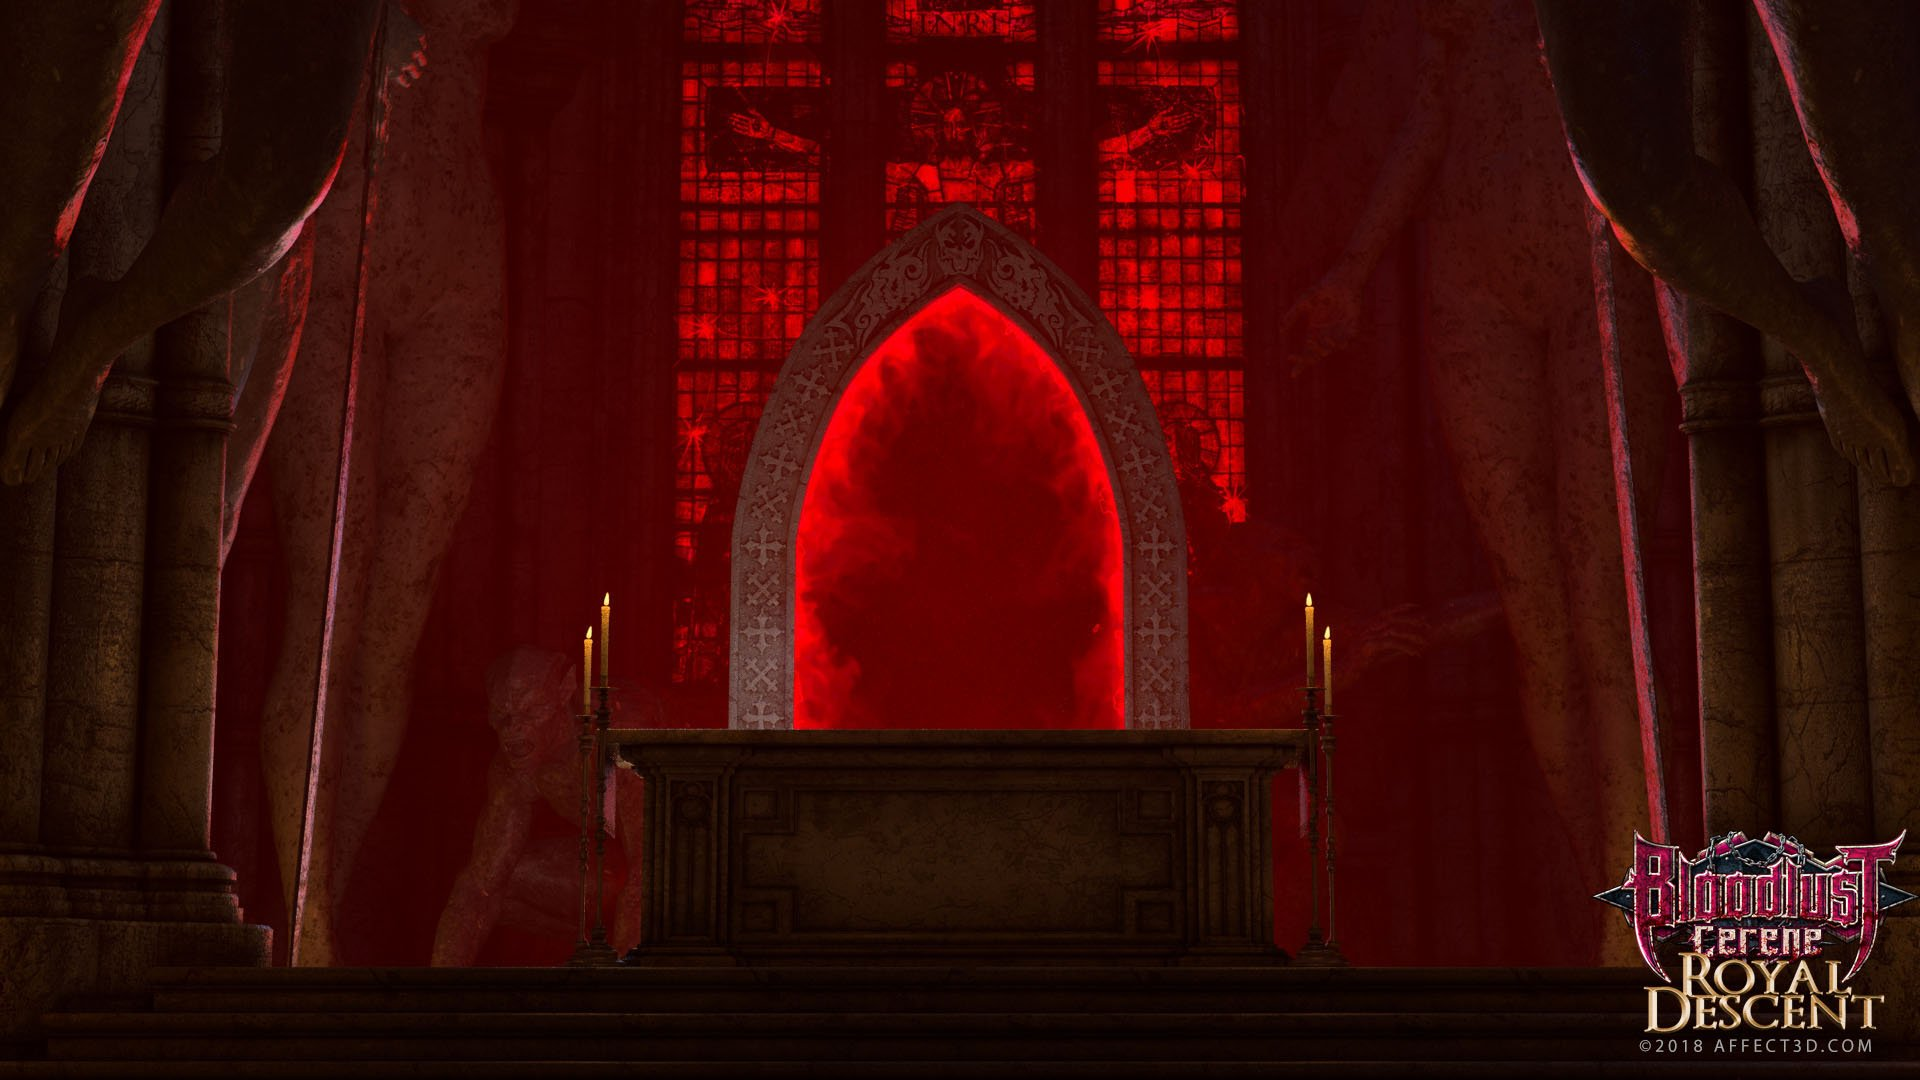 The portal and the altar of Bloodlust: Cerene - Royal Descent